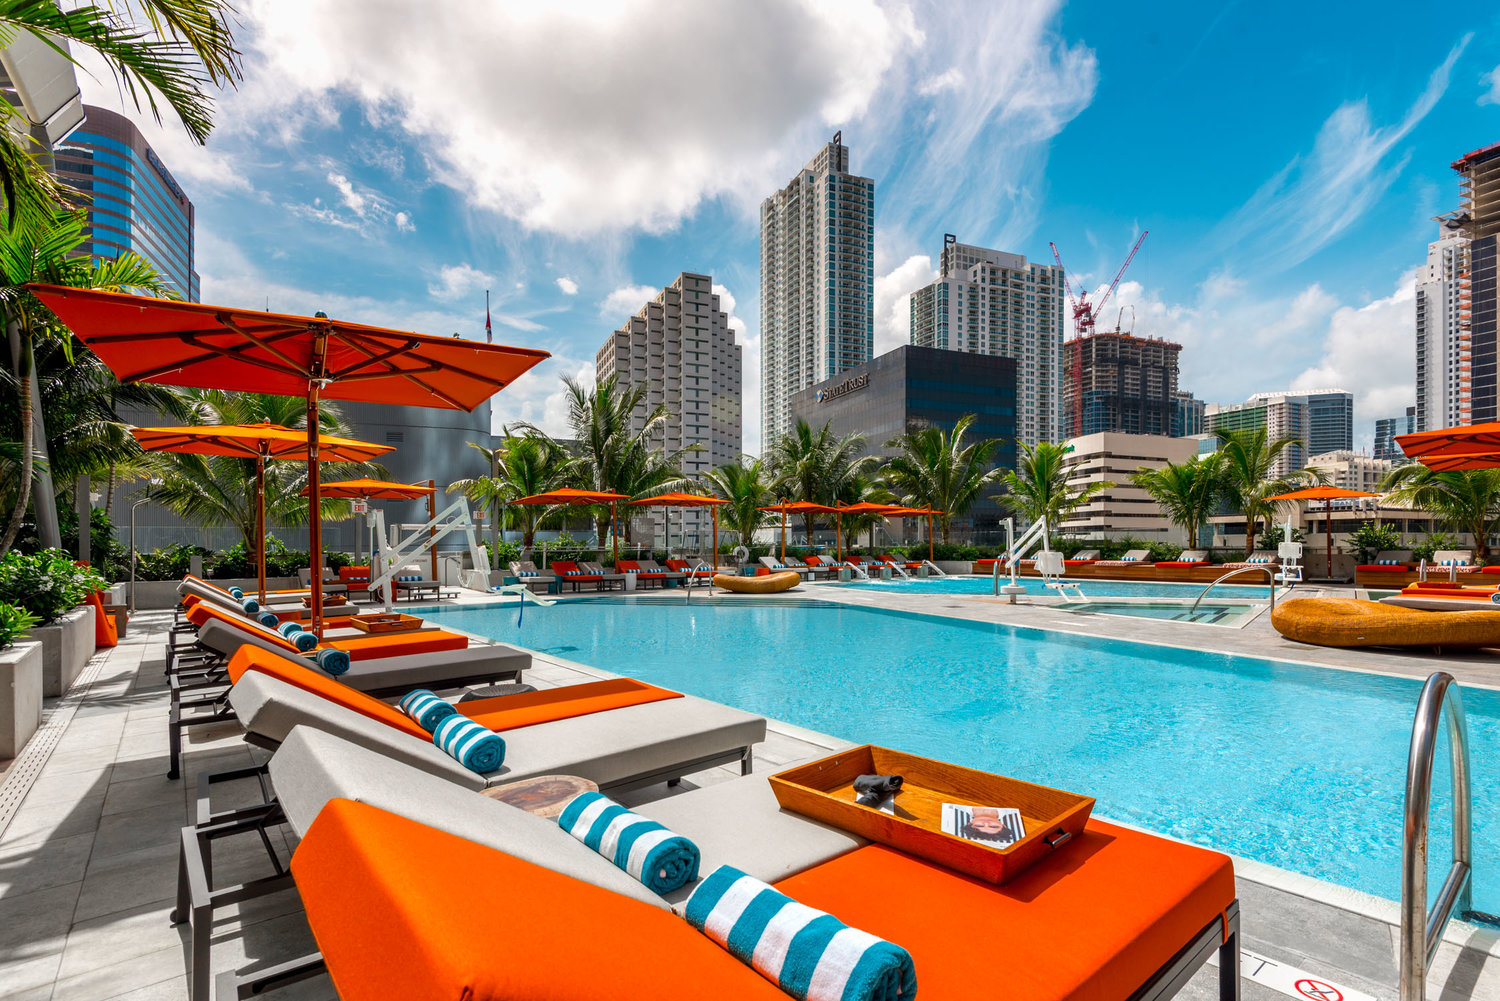 EAST Miami: A Trendy New Boutique Hotel in Miami — No Destinations